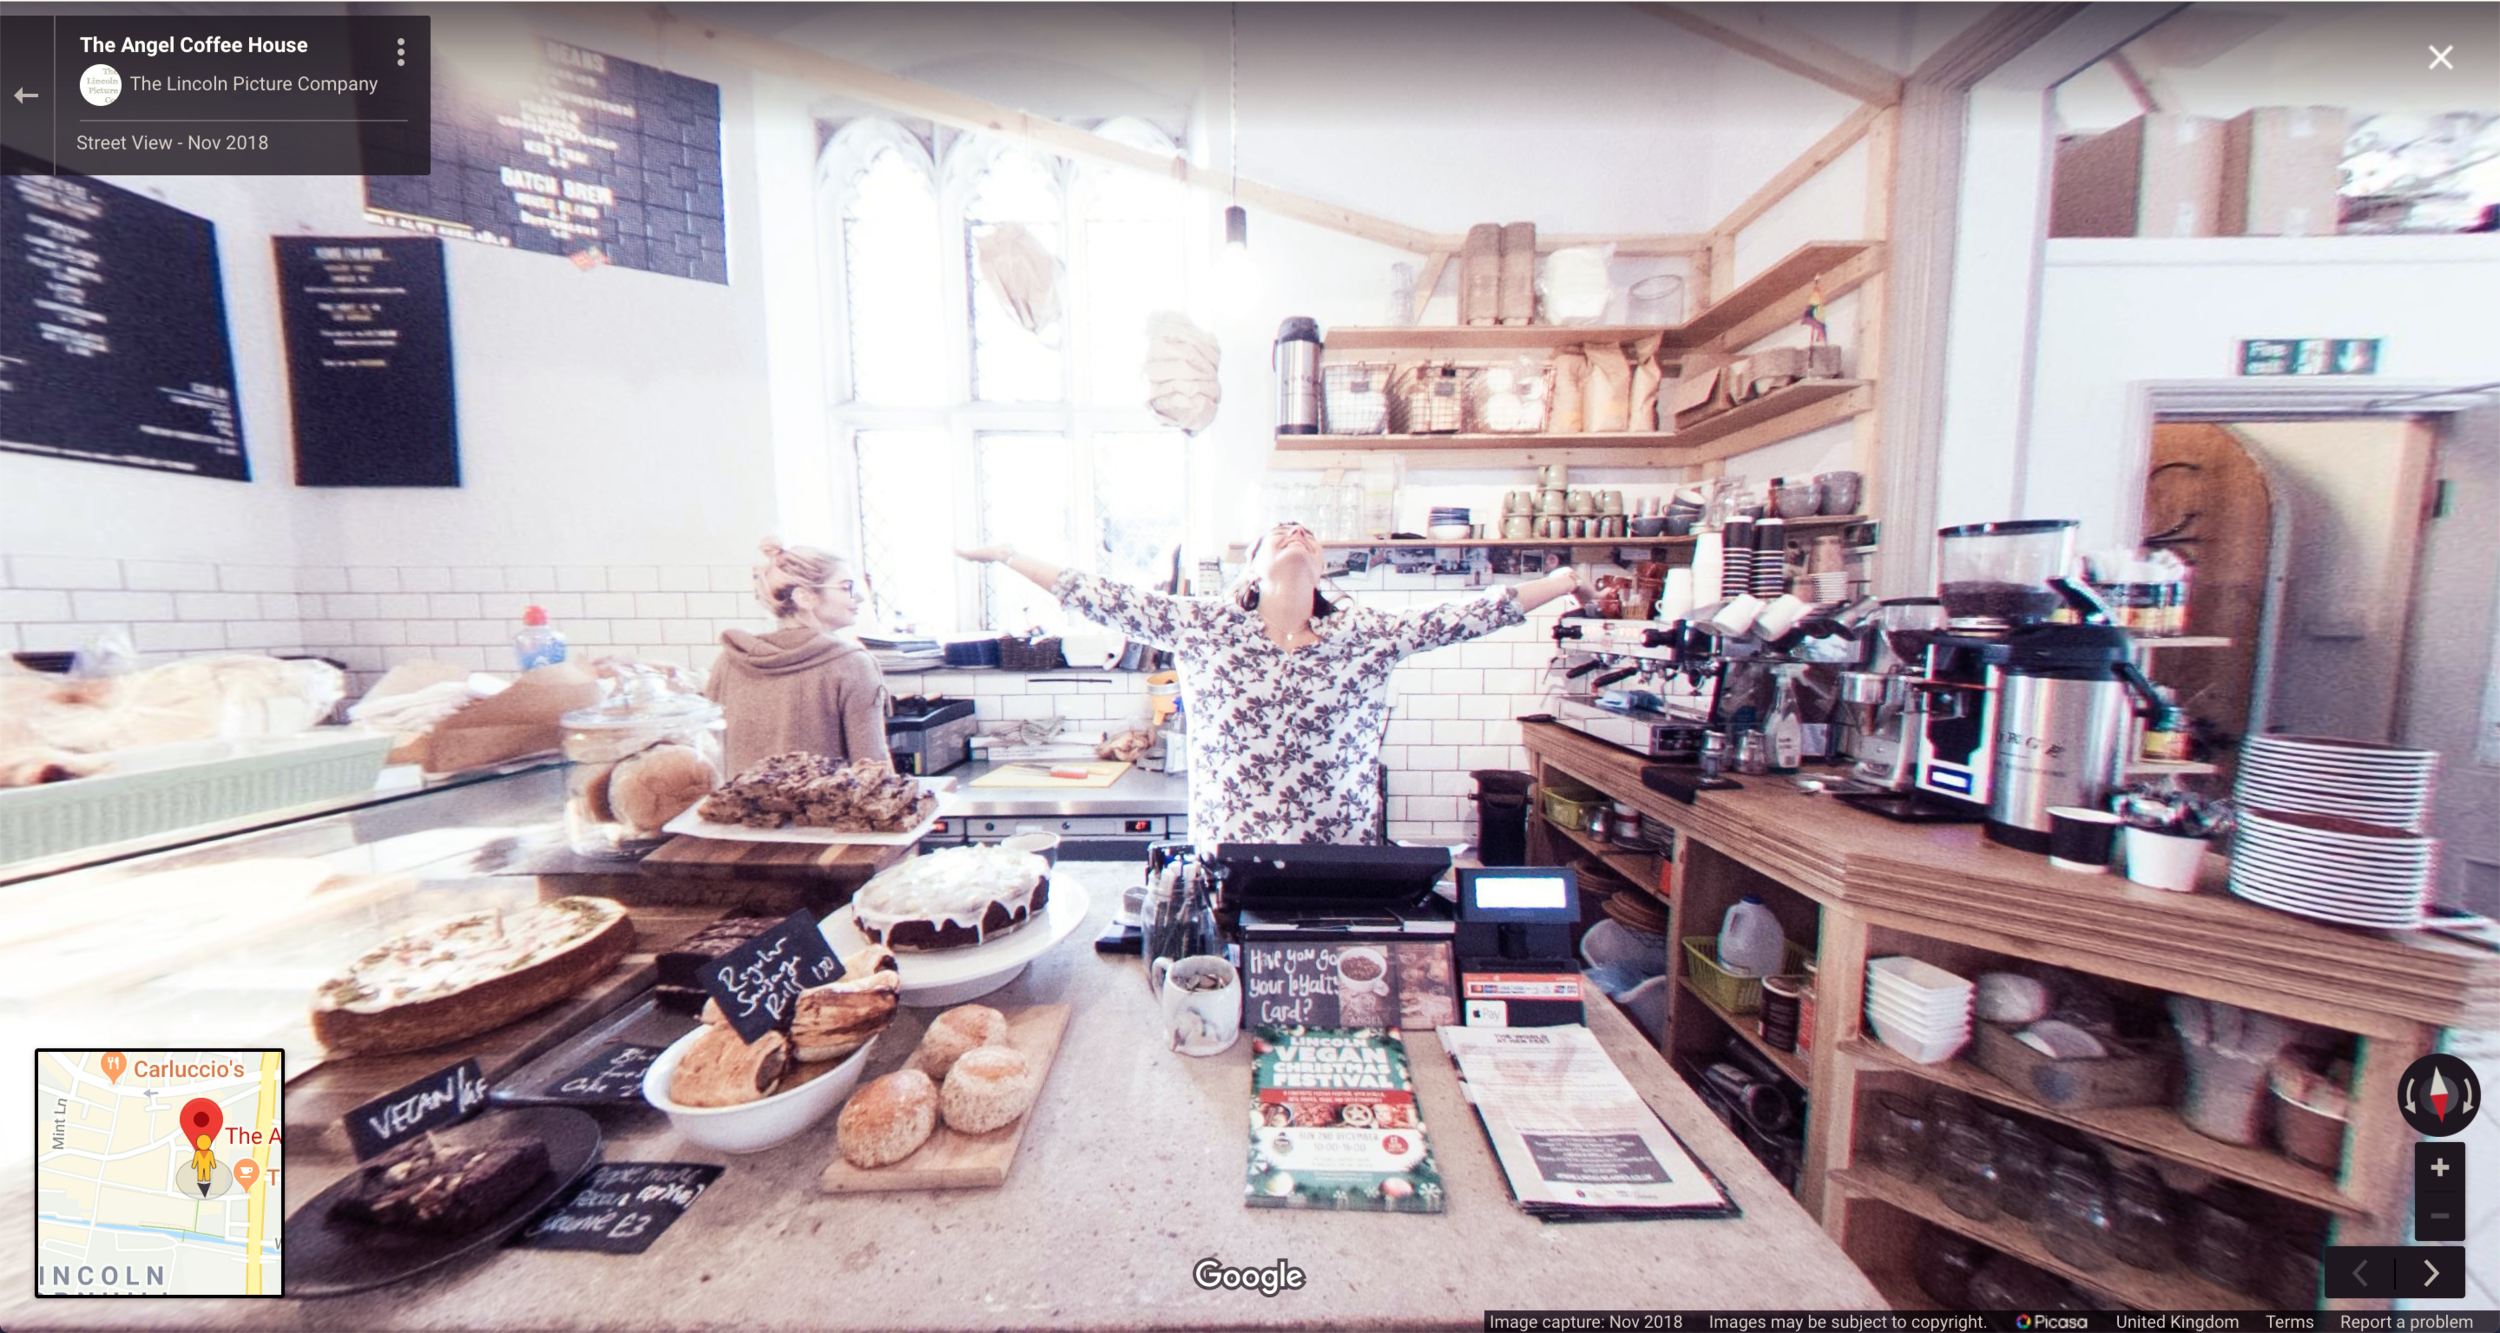 angel-coffee-house-lincoln-google-street-view.png